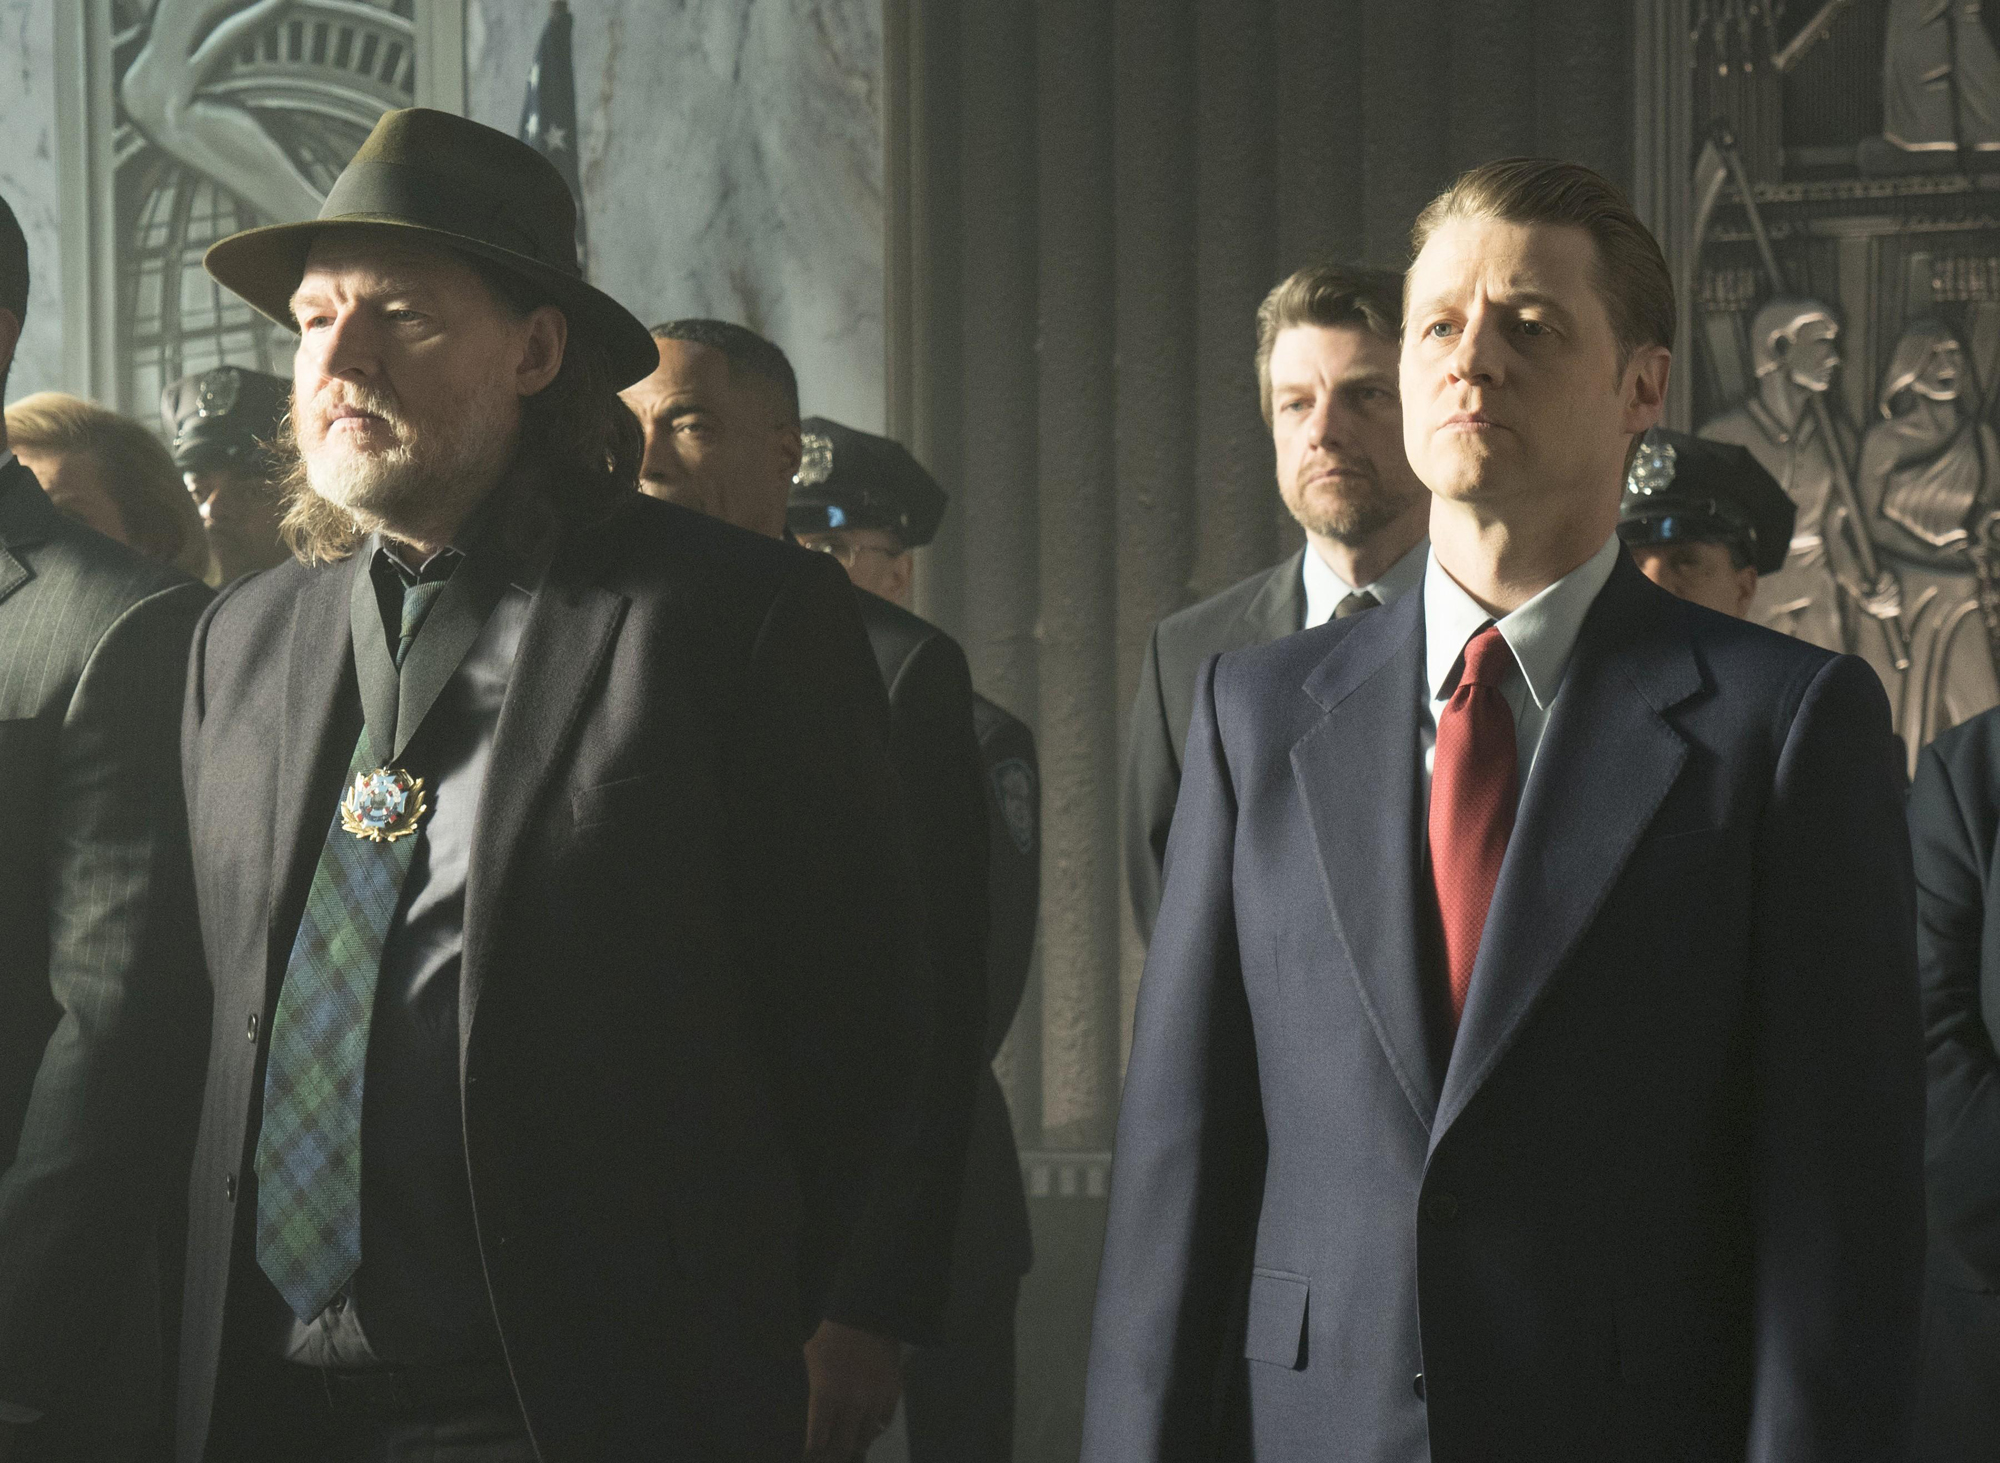 5x11 - They Did What - Bullock and Gordon